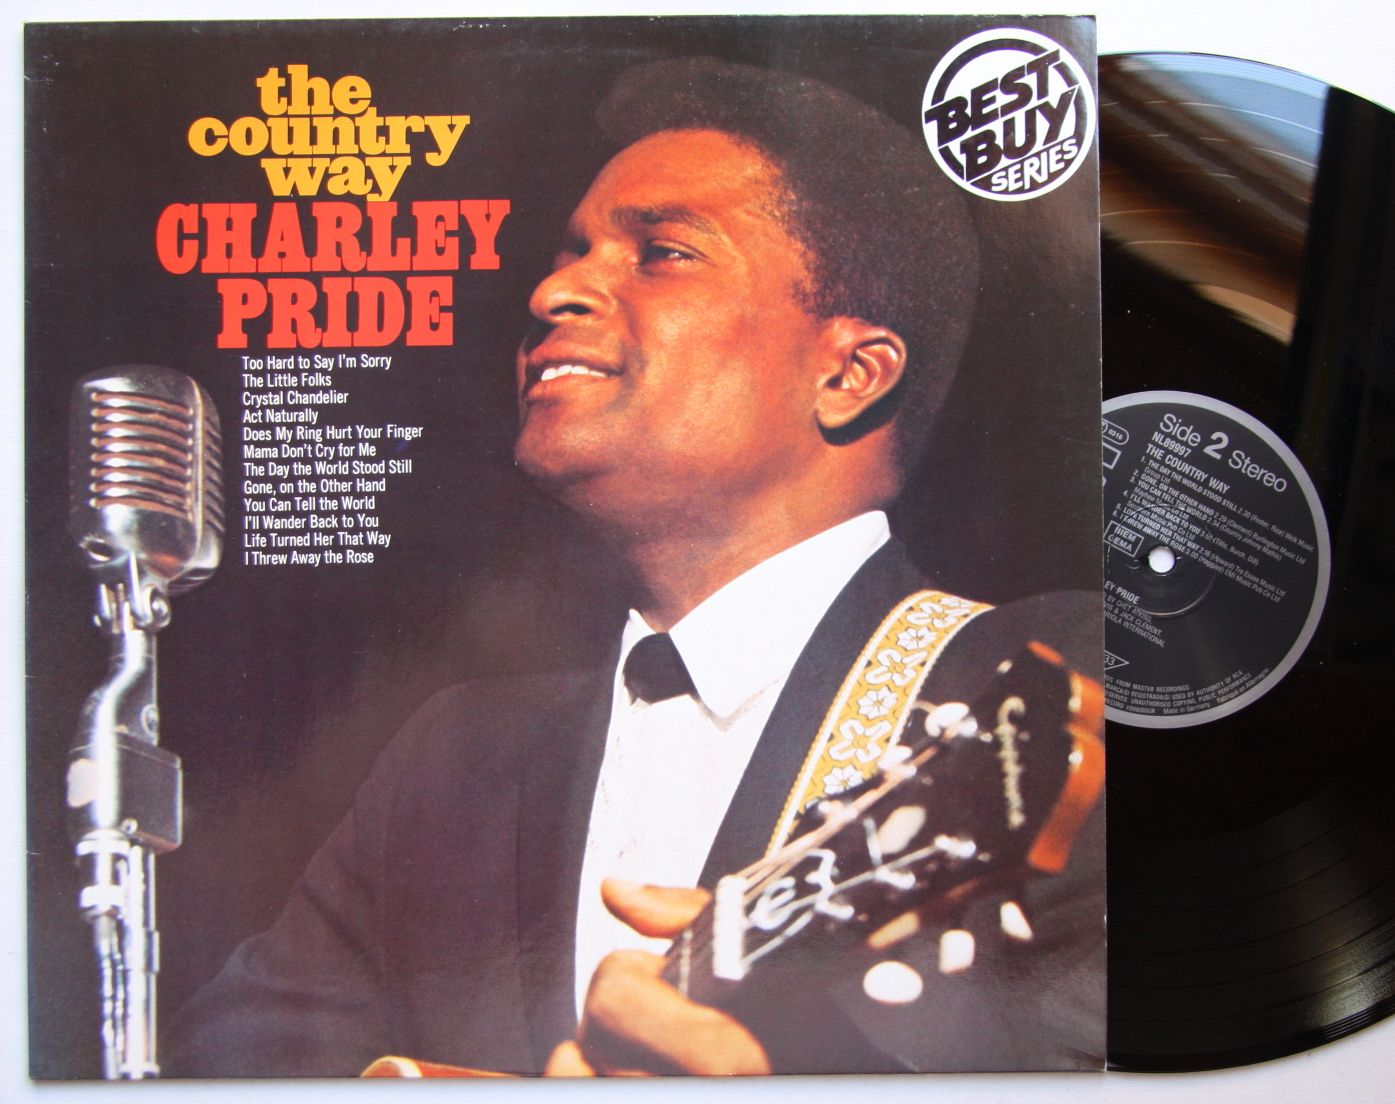 Charley pride country charley pride records lps vinyl and cds charley pride the country way aloadofball Image collections